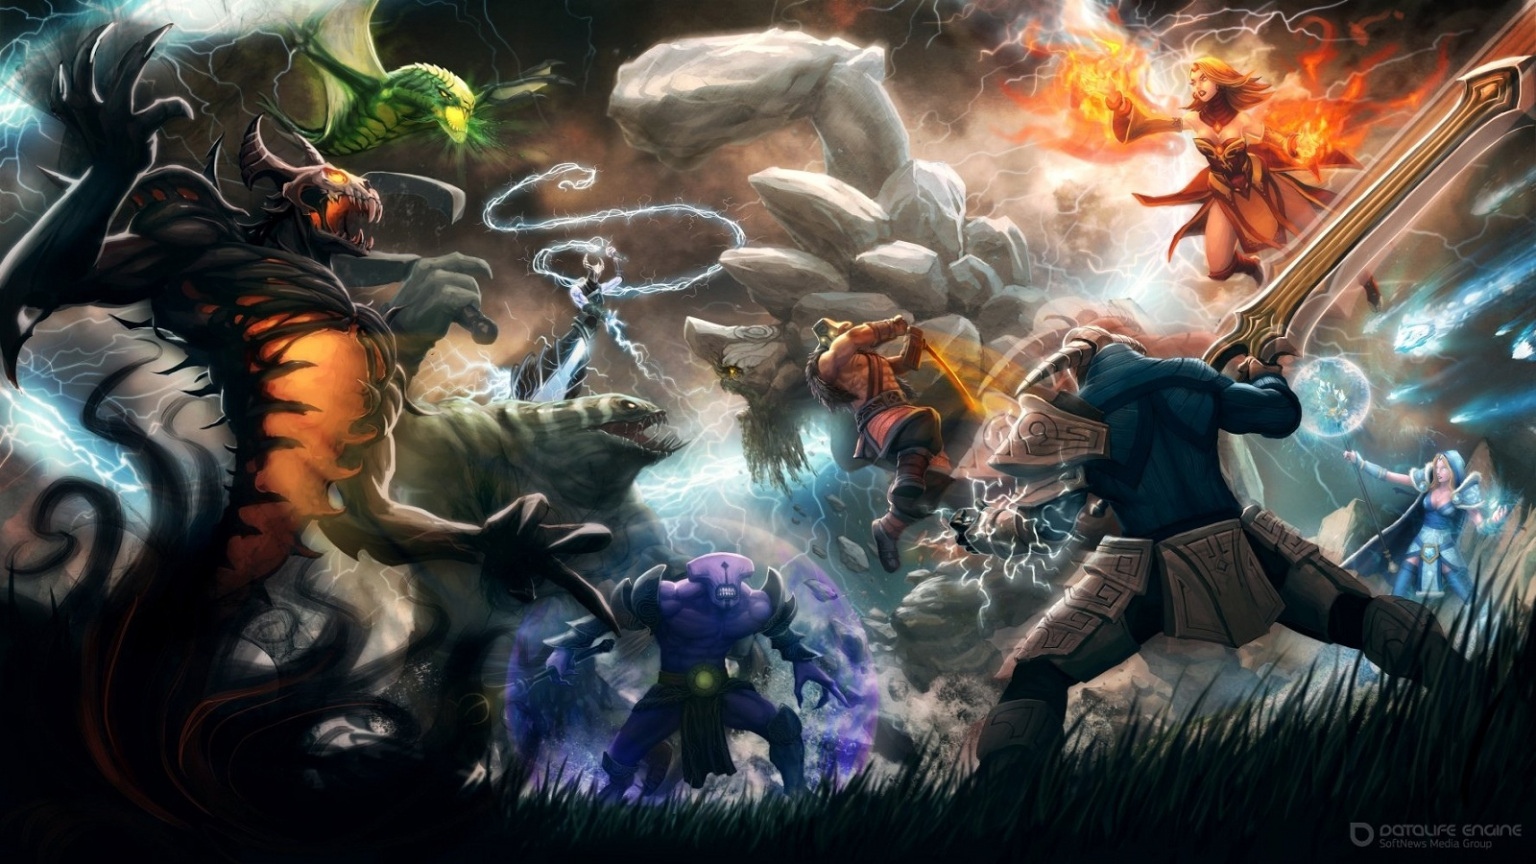 Free Download Defense Of The Ancients Games 1600x900 For Your